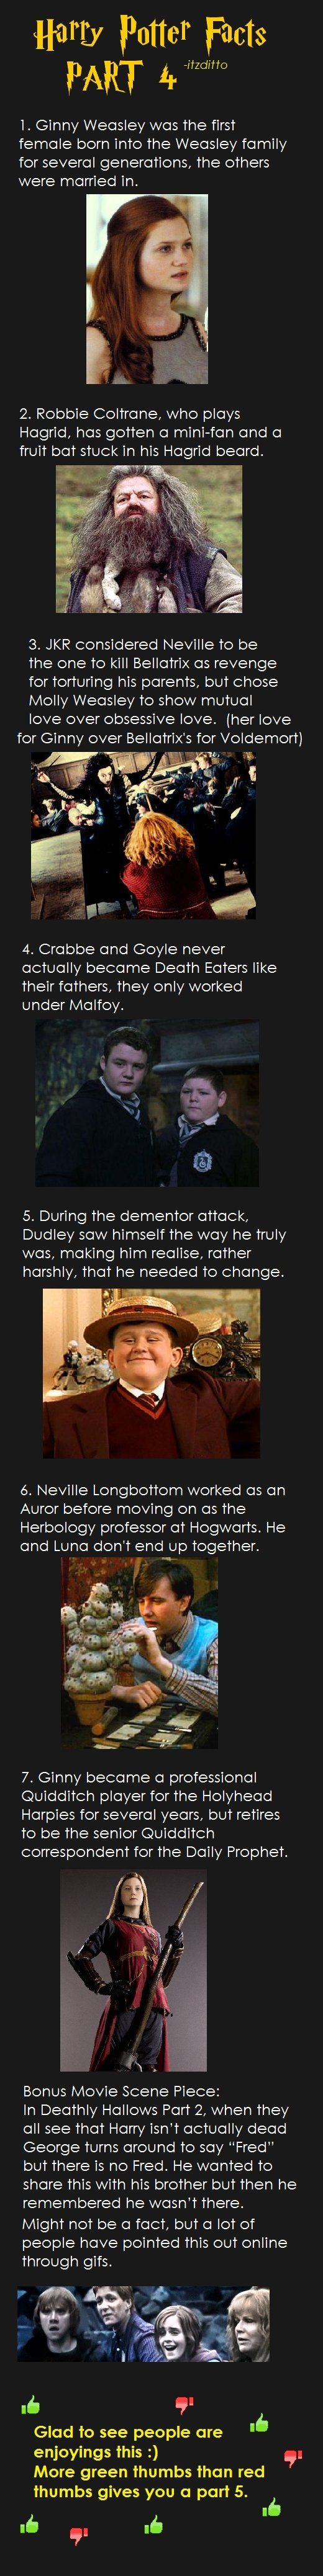 More Potter facts All these things about George losing Fred breaks my heart :(